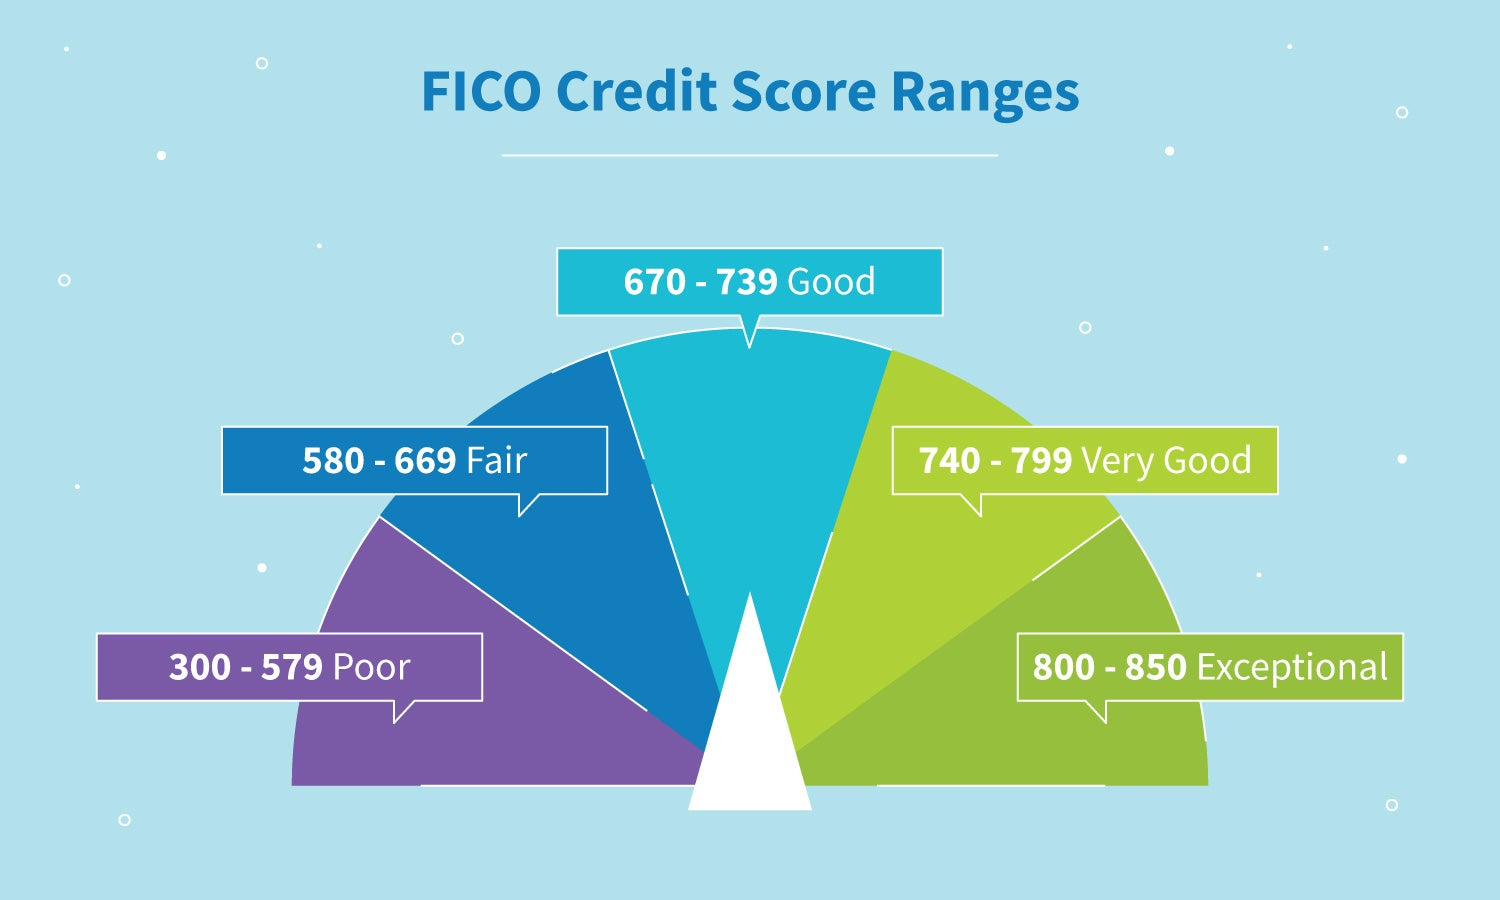 FICO credit score ranges: 300-500 = Poor; 580-669 = Fair; 670-739 = Good; 740-799 = Very Good; 800-850 = Exceptional